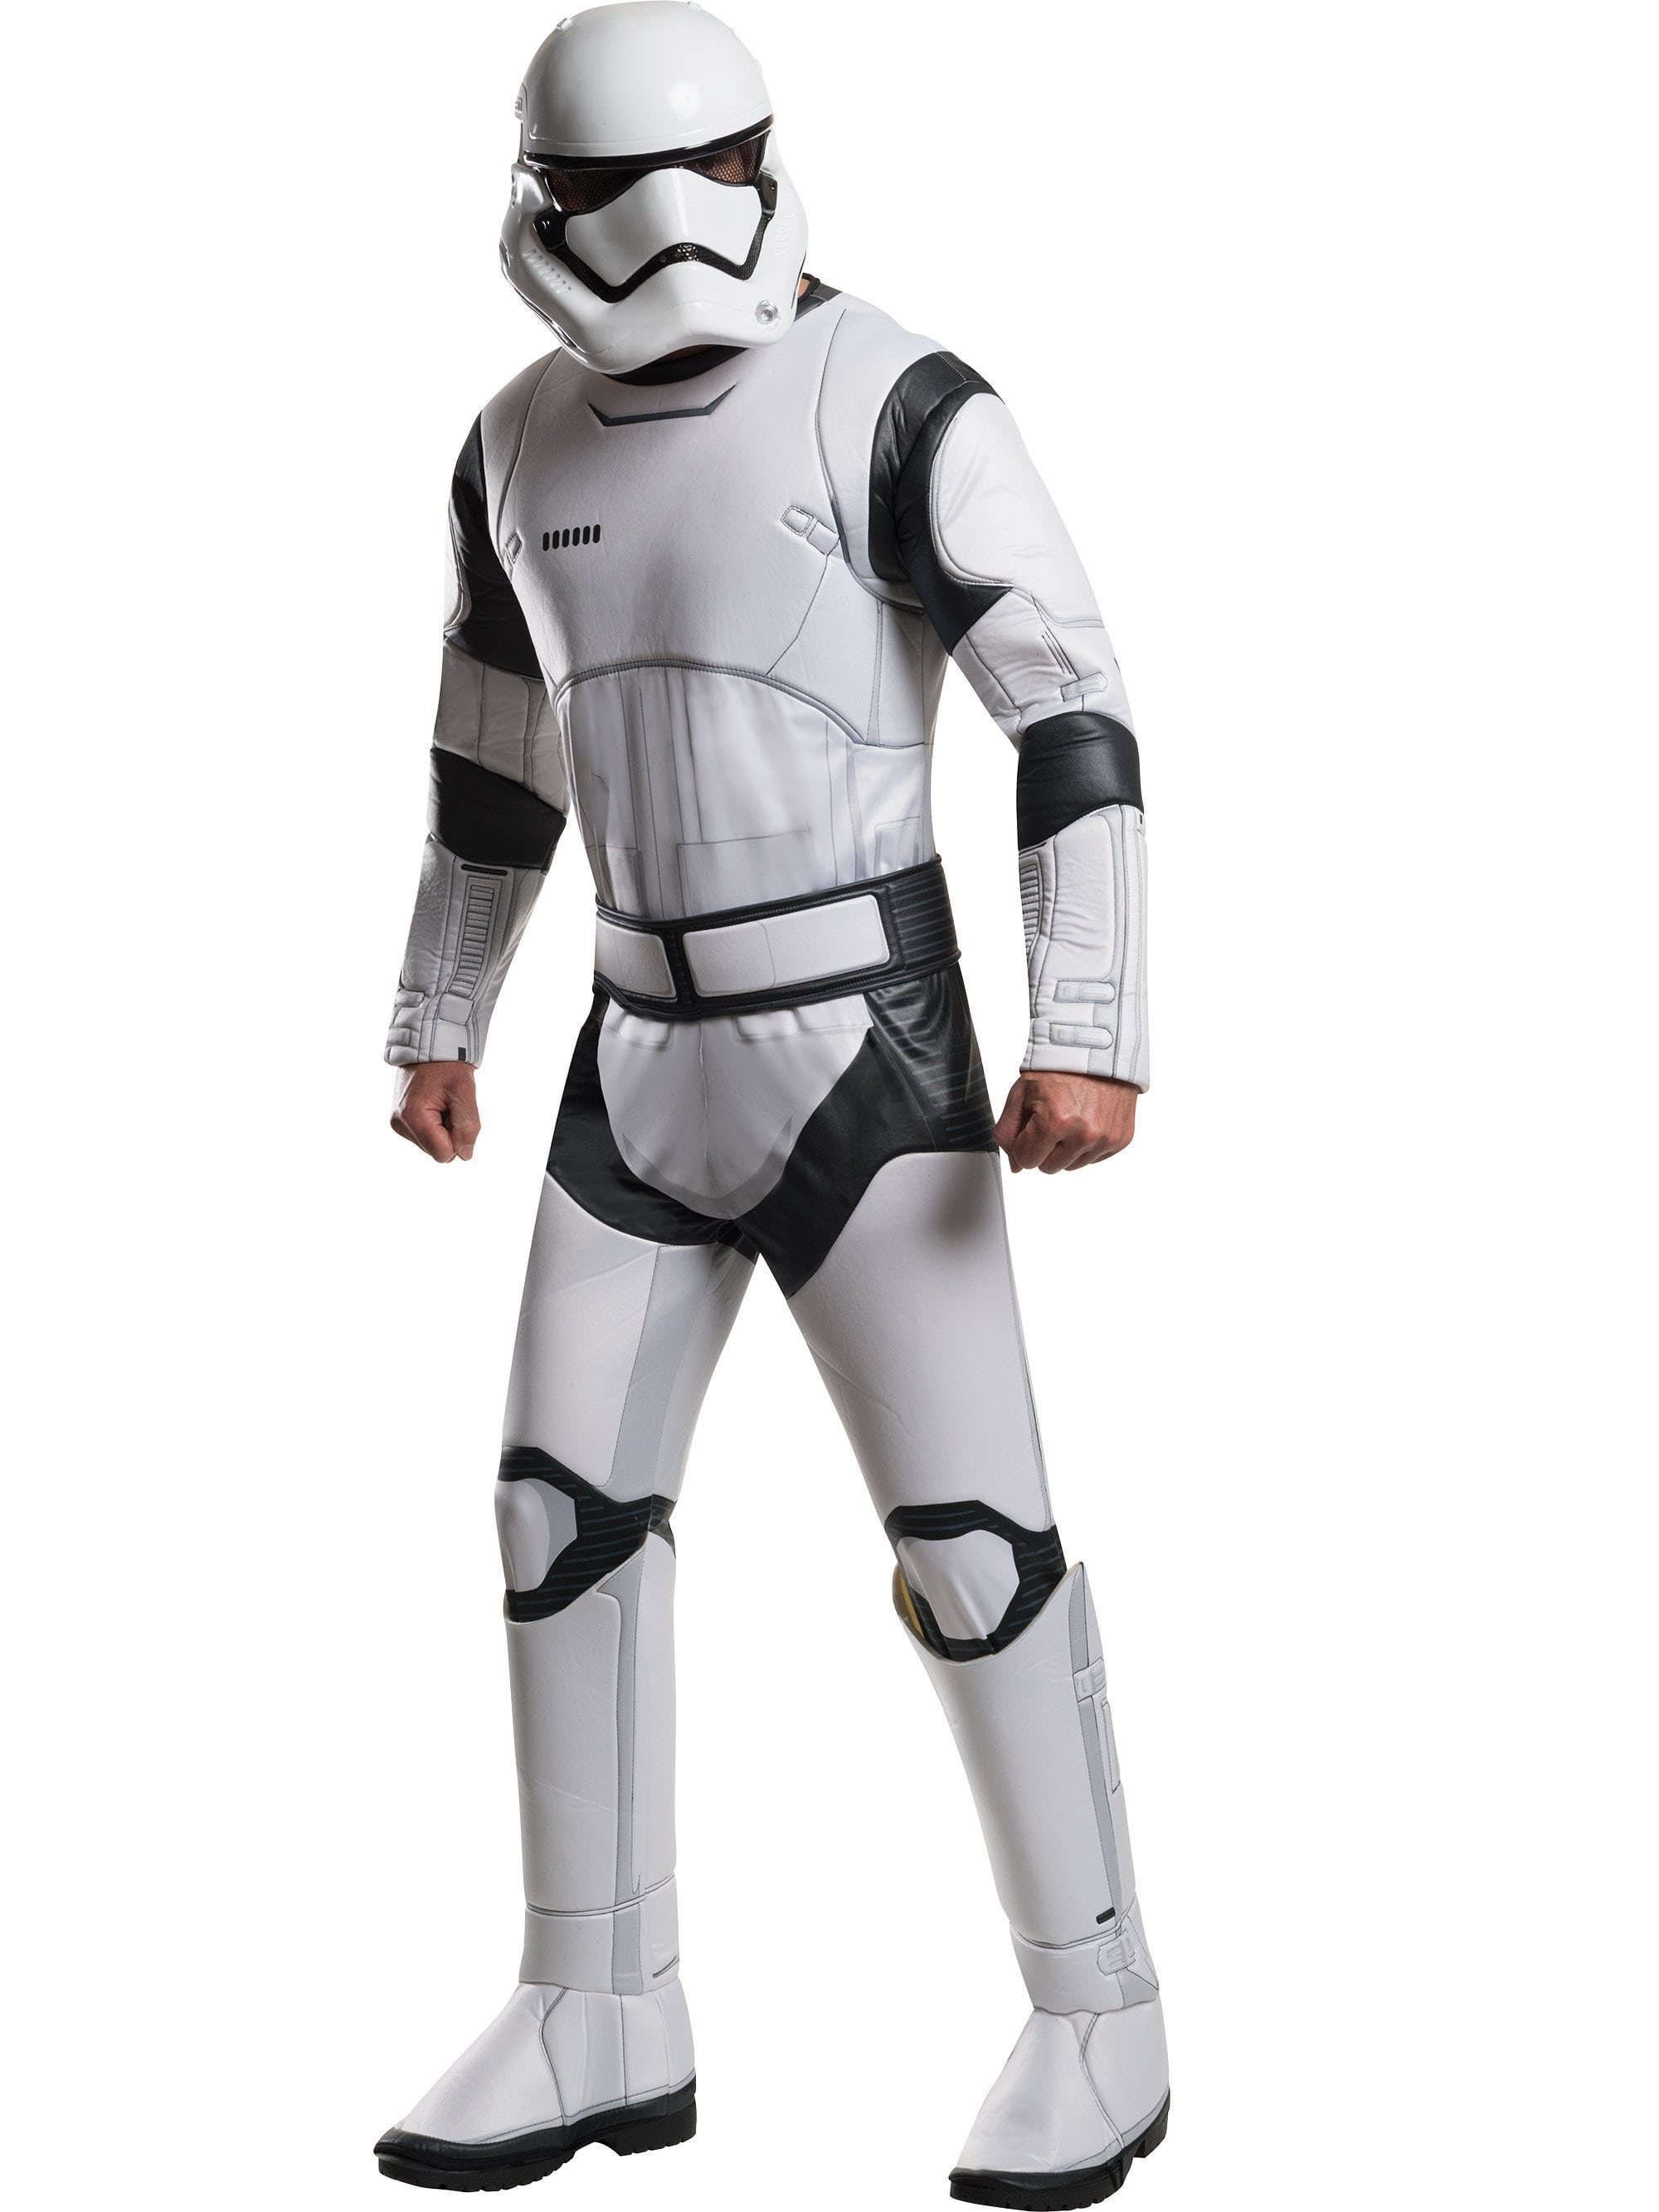 FREE SHIPPING! Star Wars The Force Awakens Deluxe Flametrooper Adult Costume